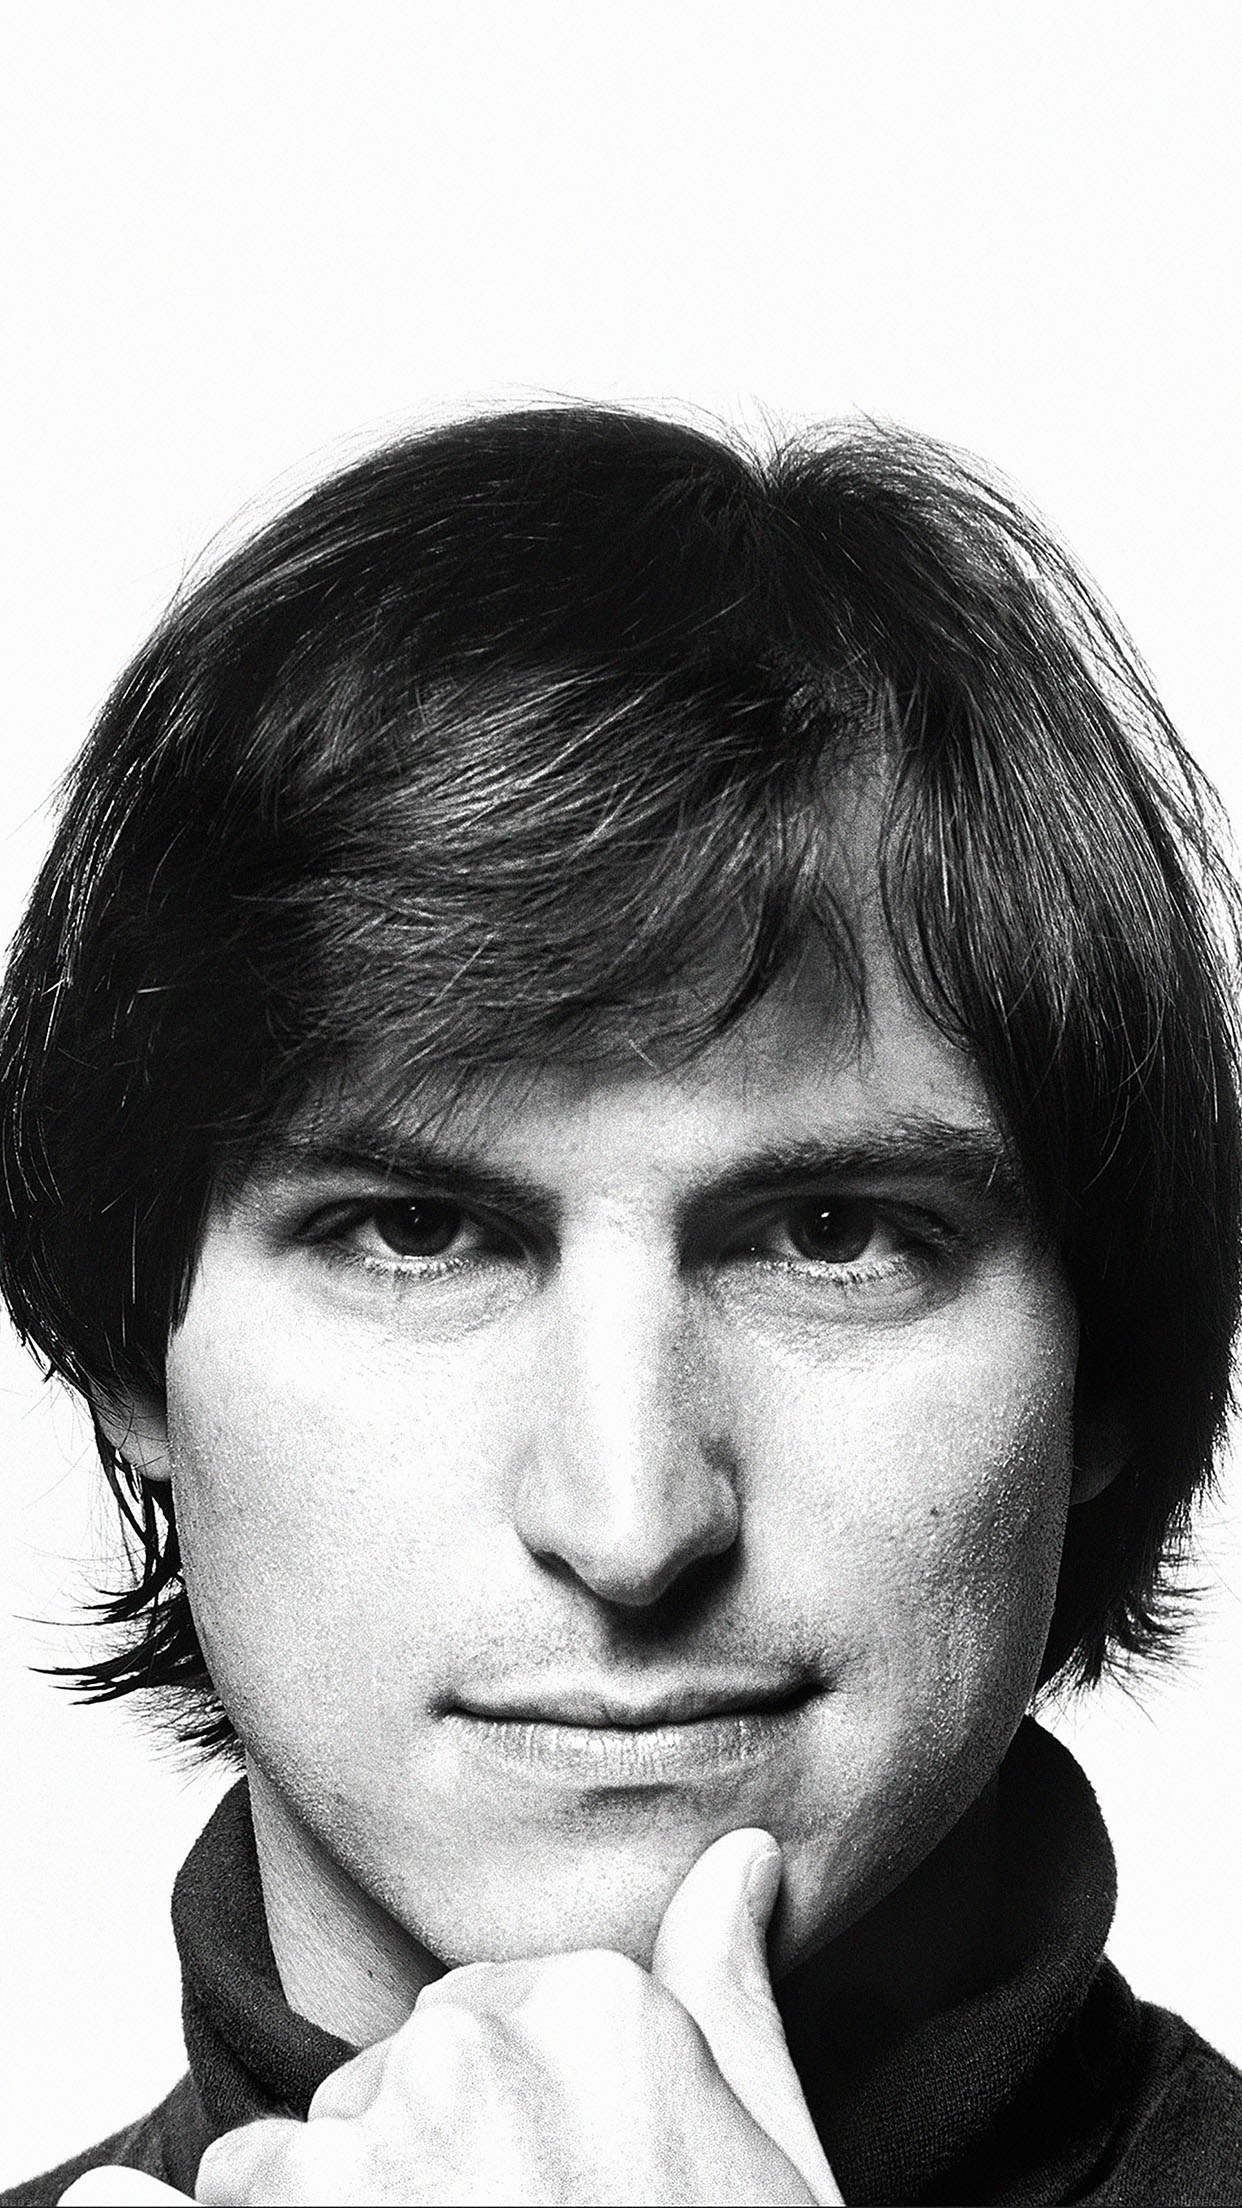 essay biography of steve jobs Essay on steve jobs life mcclintock october 15, 2016 in october 5, was a new essay yes, i knew him were a long biography: walter isaacson: genre: r1204f nearly 13.